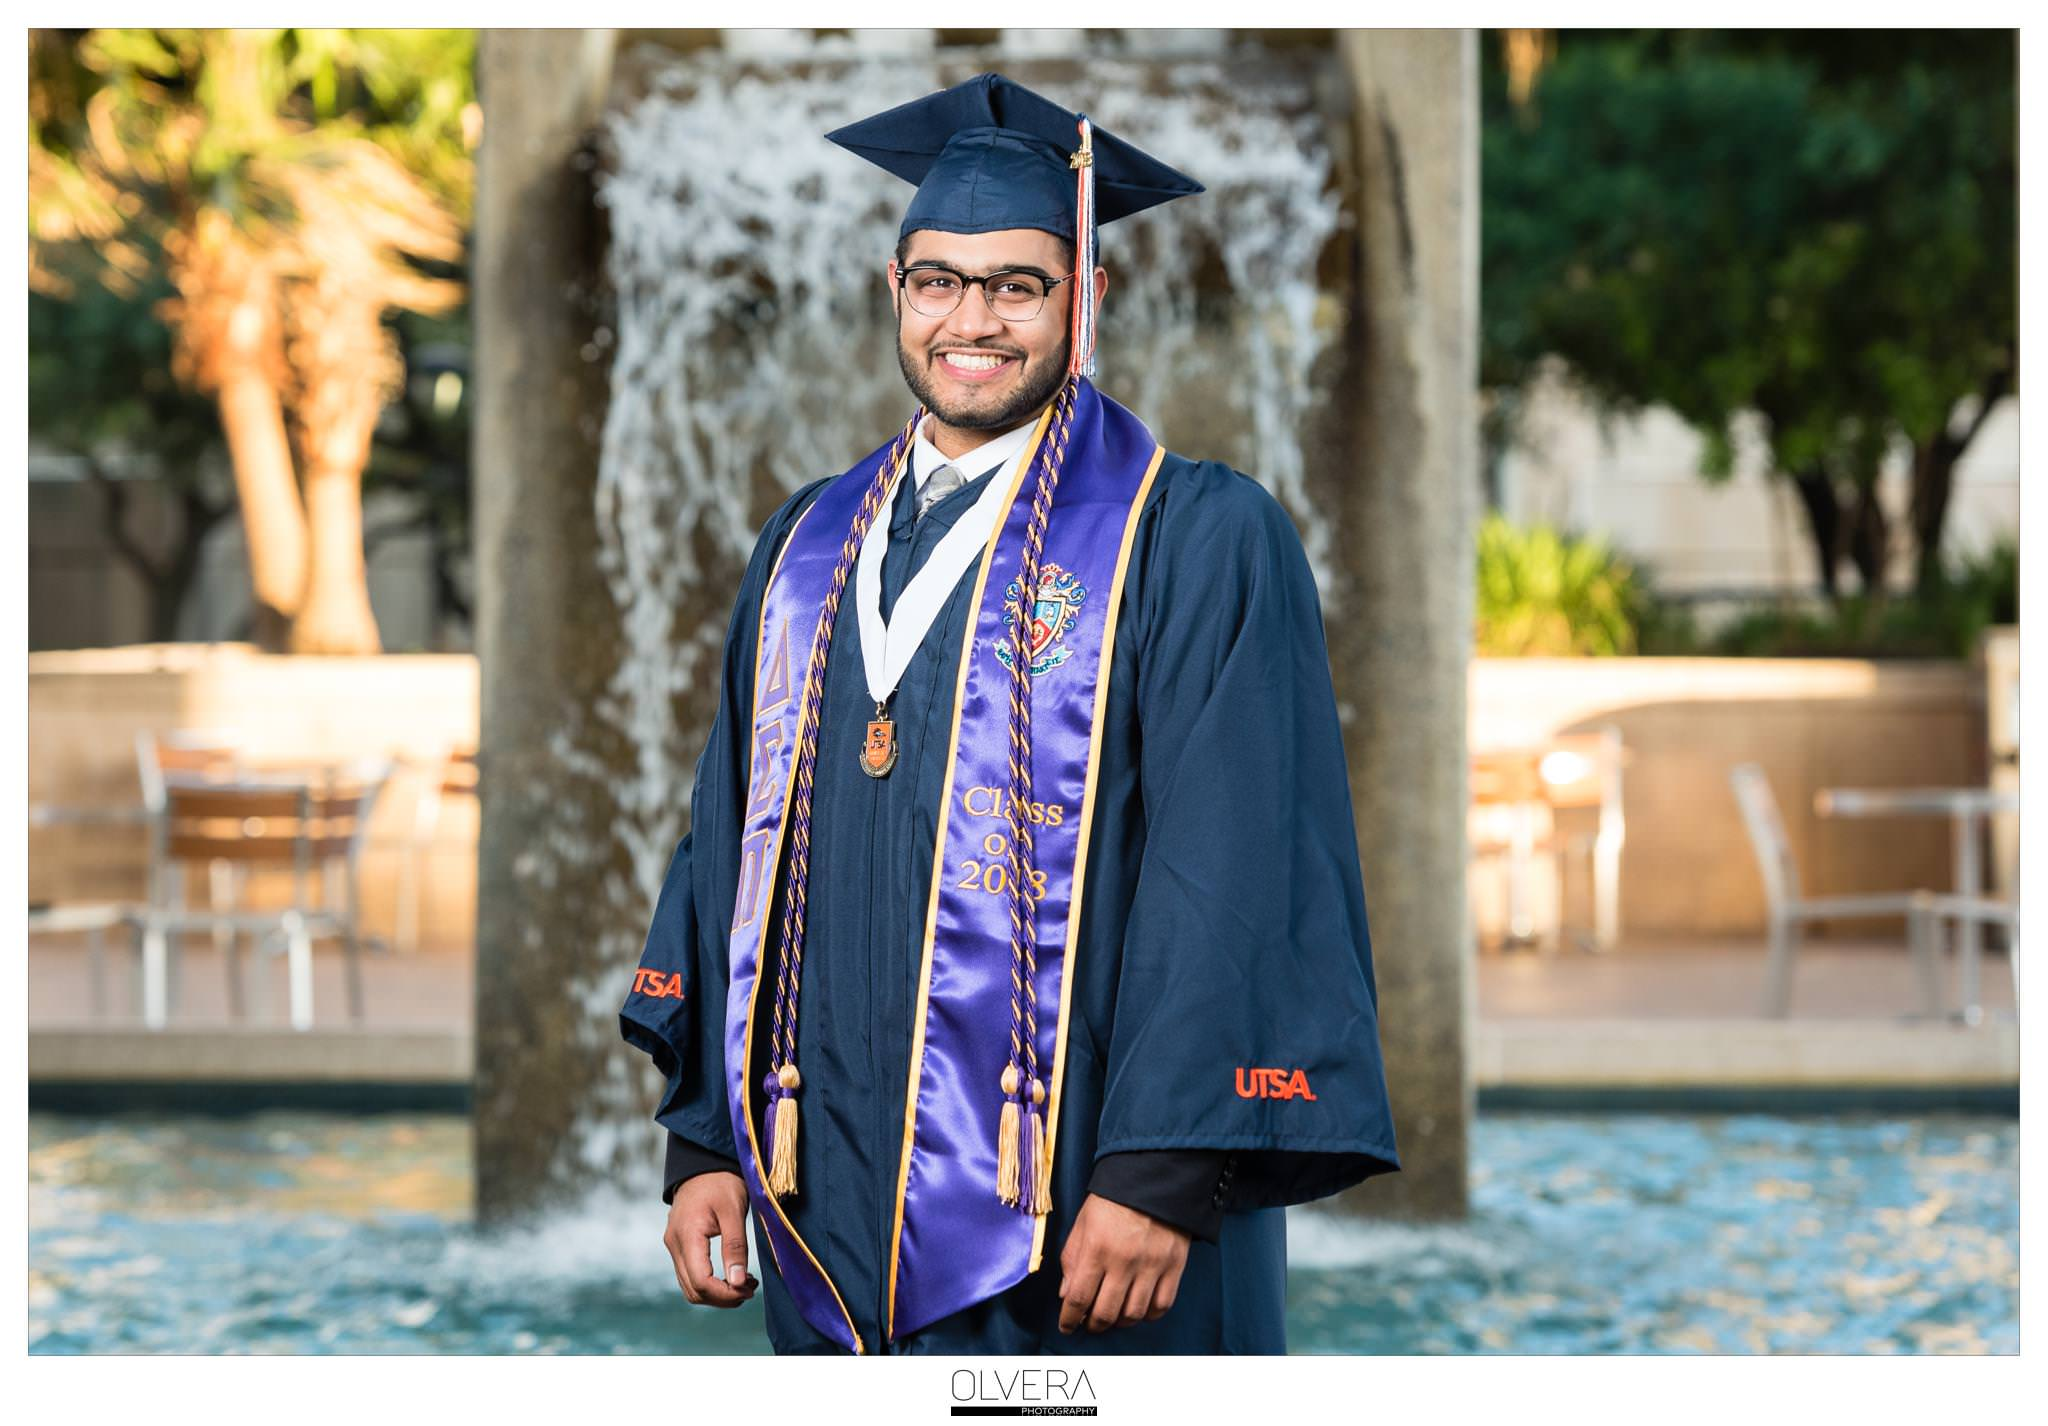 UTSA-Senior-Graduation- Portraits_San Antonio-TX 2